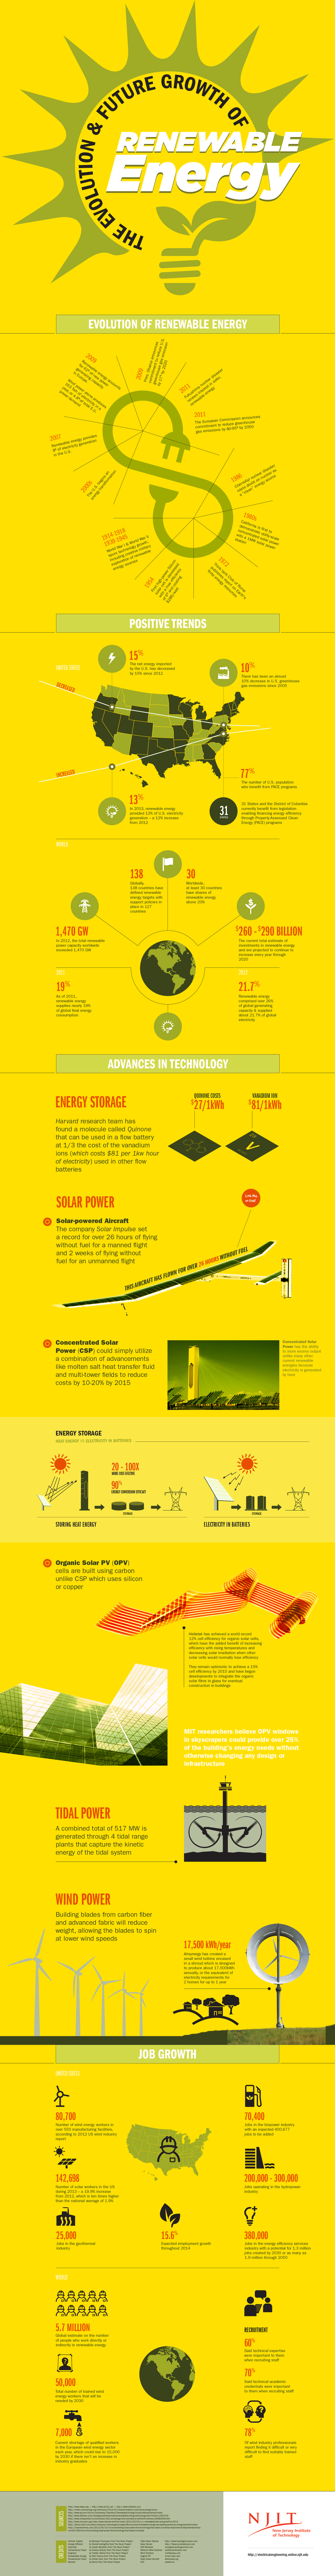 This is How Renewable Energy Has Evolved Over The Years - Infographic